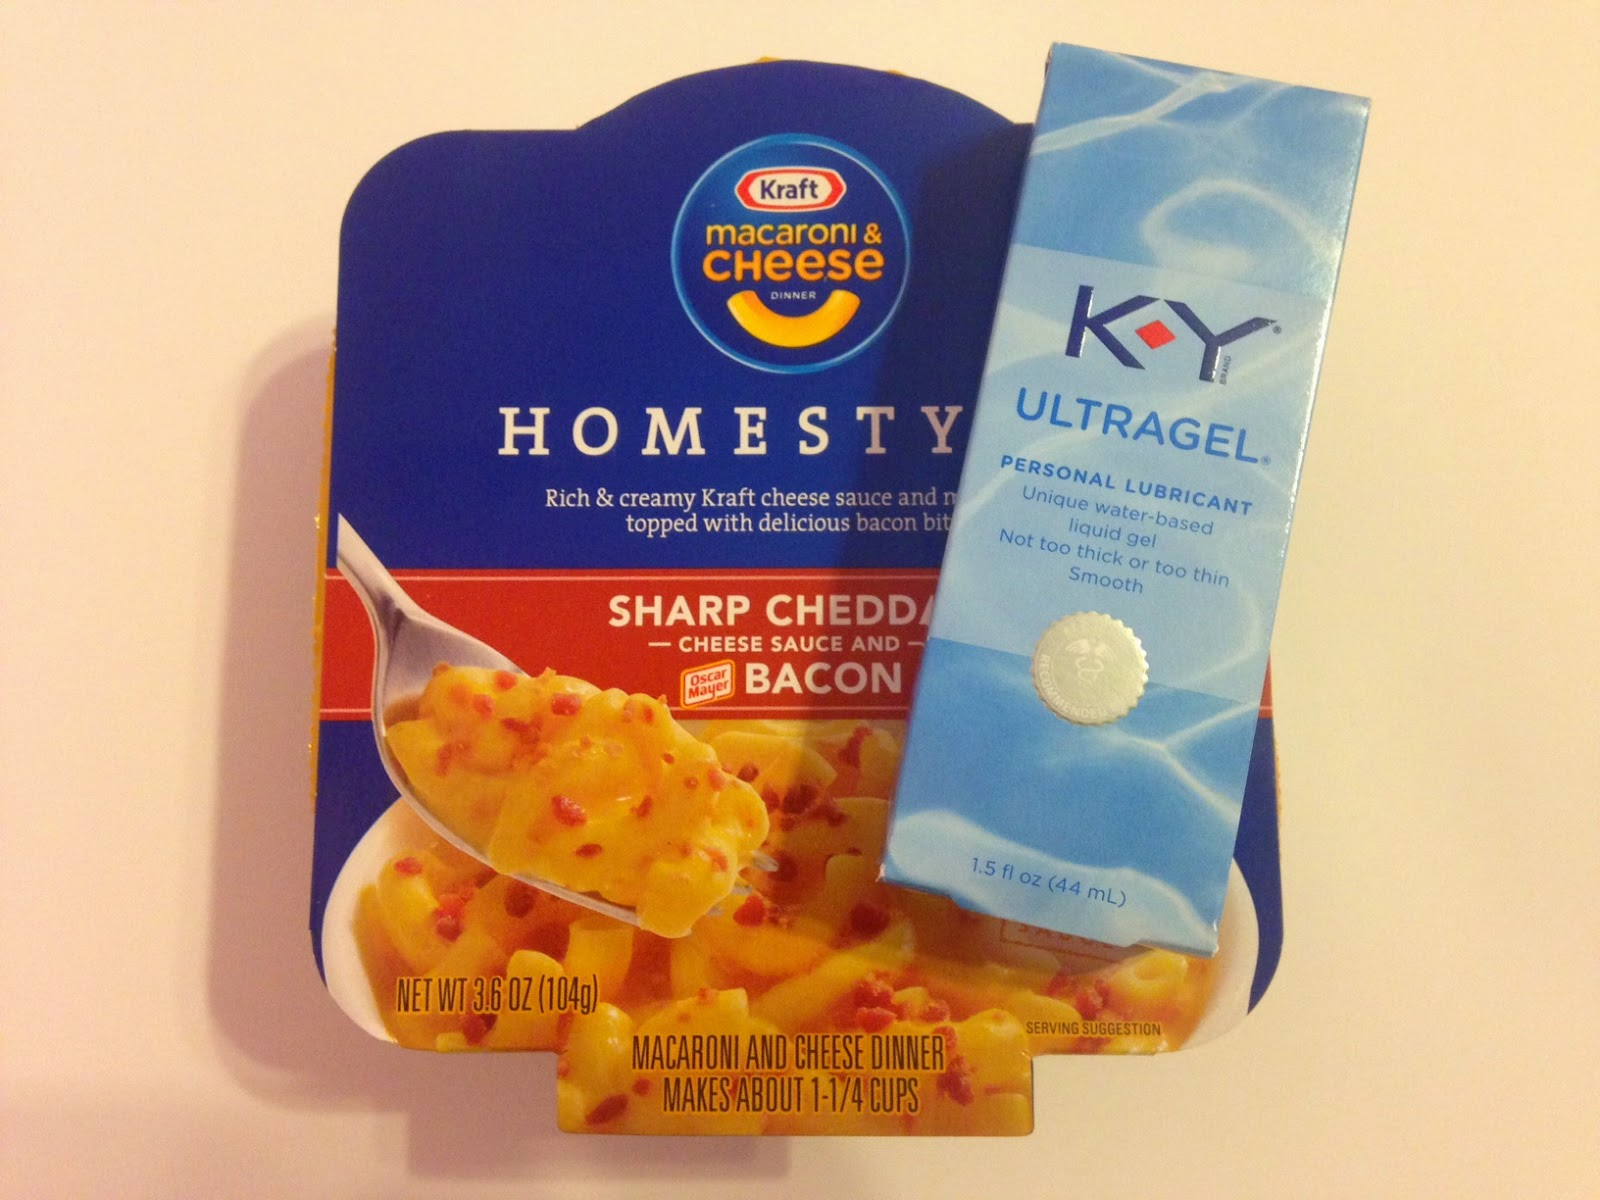 Kraft Macaroni & Cheese, KY Ultragel